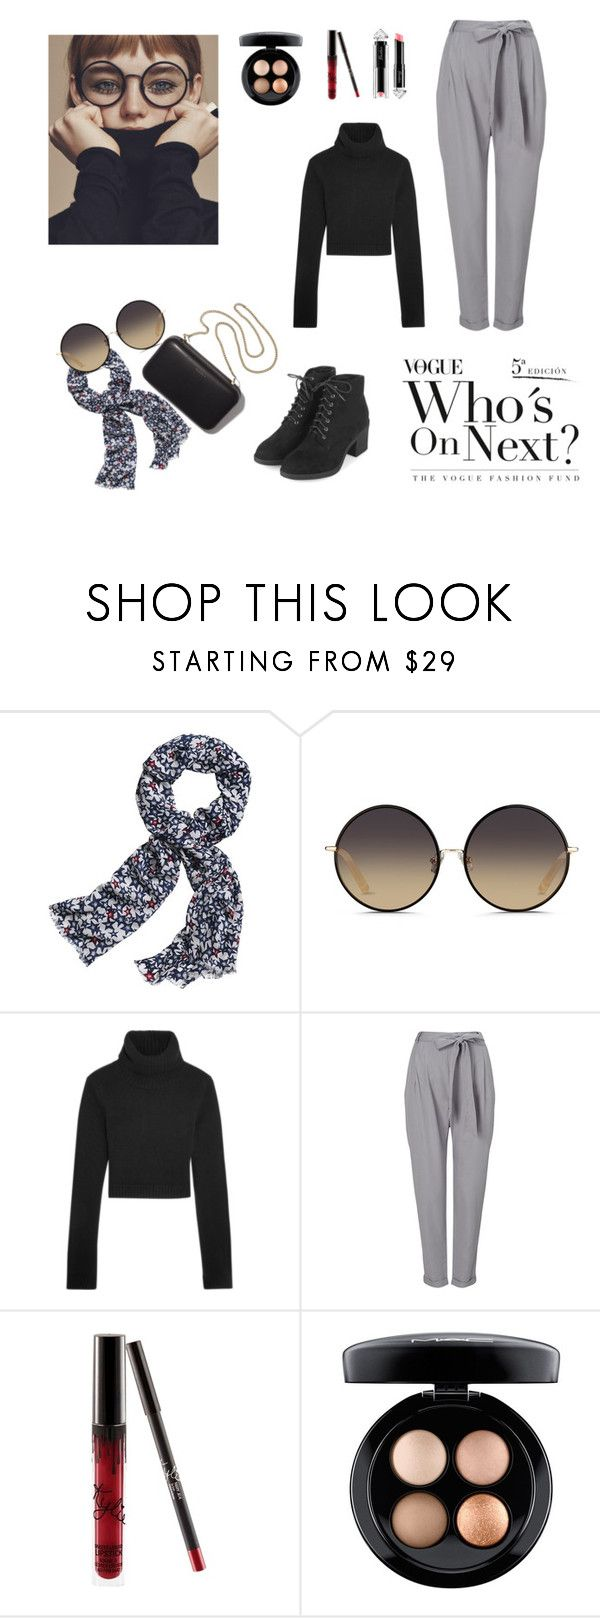 """""""vogue"""" by zahrohusna on Polyvore featuring Canvas by Lands' End, Matthew Williamson, Michael Kors, Phase Eight, MAC Cosmetics, La Petite Robe di Chiara Boni, Clare V., Topshop, stylish and glasess"""